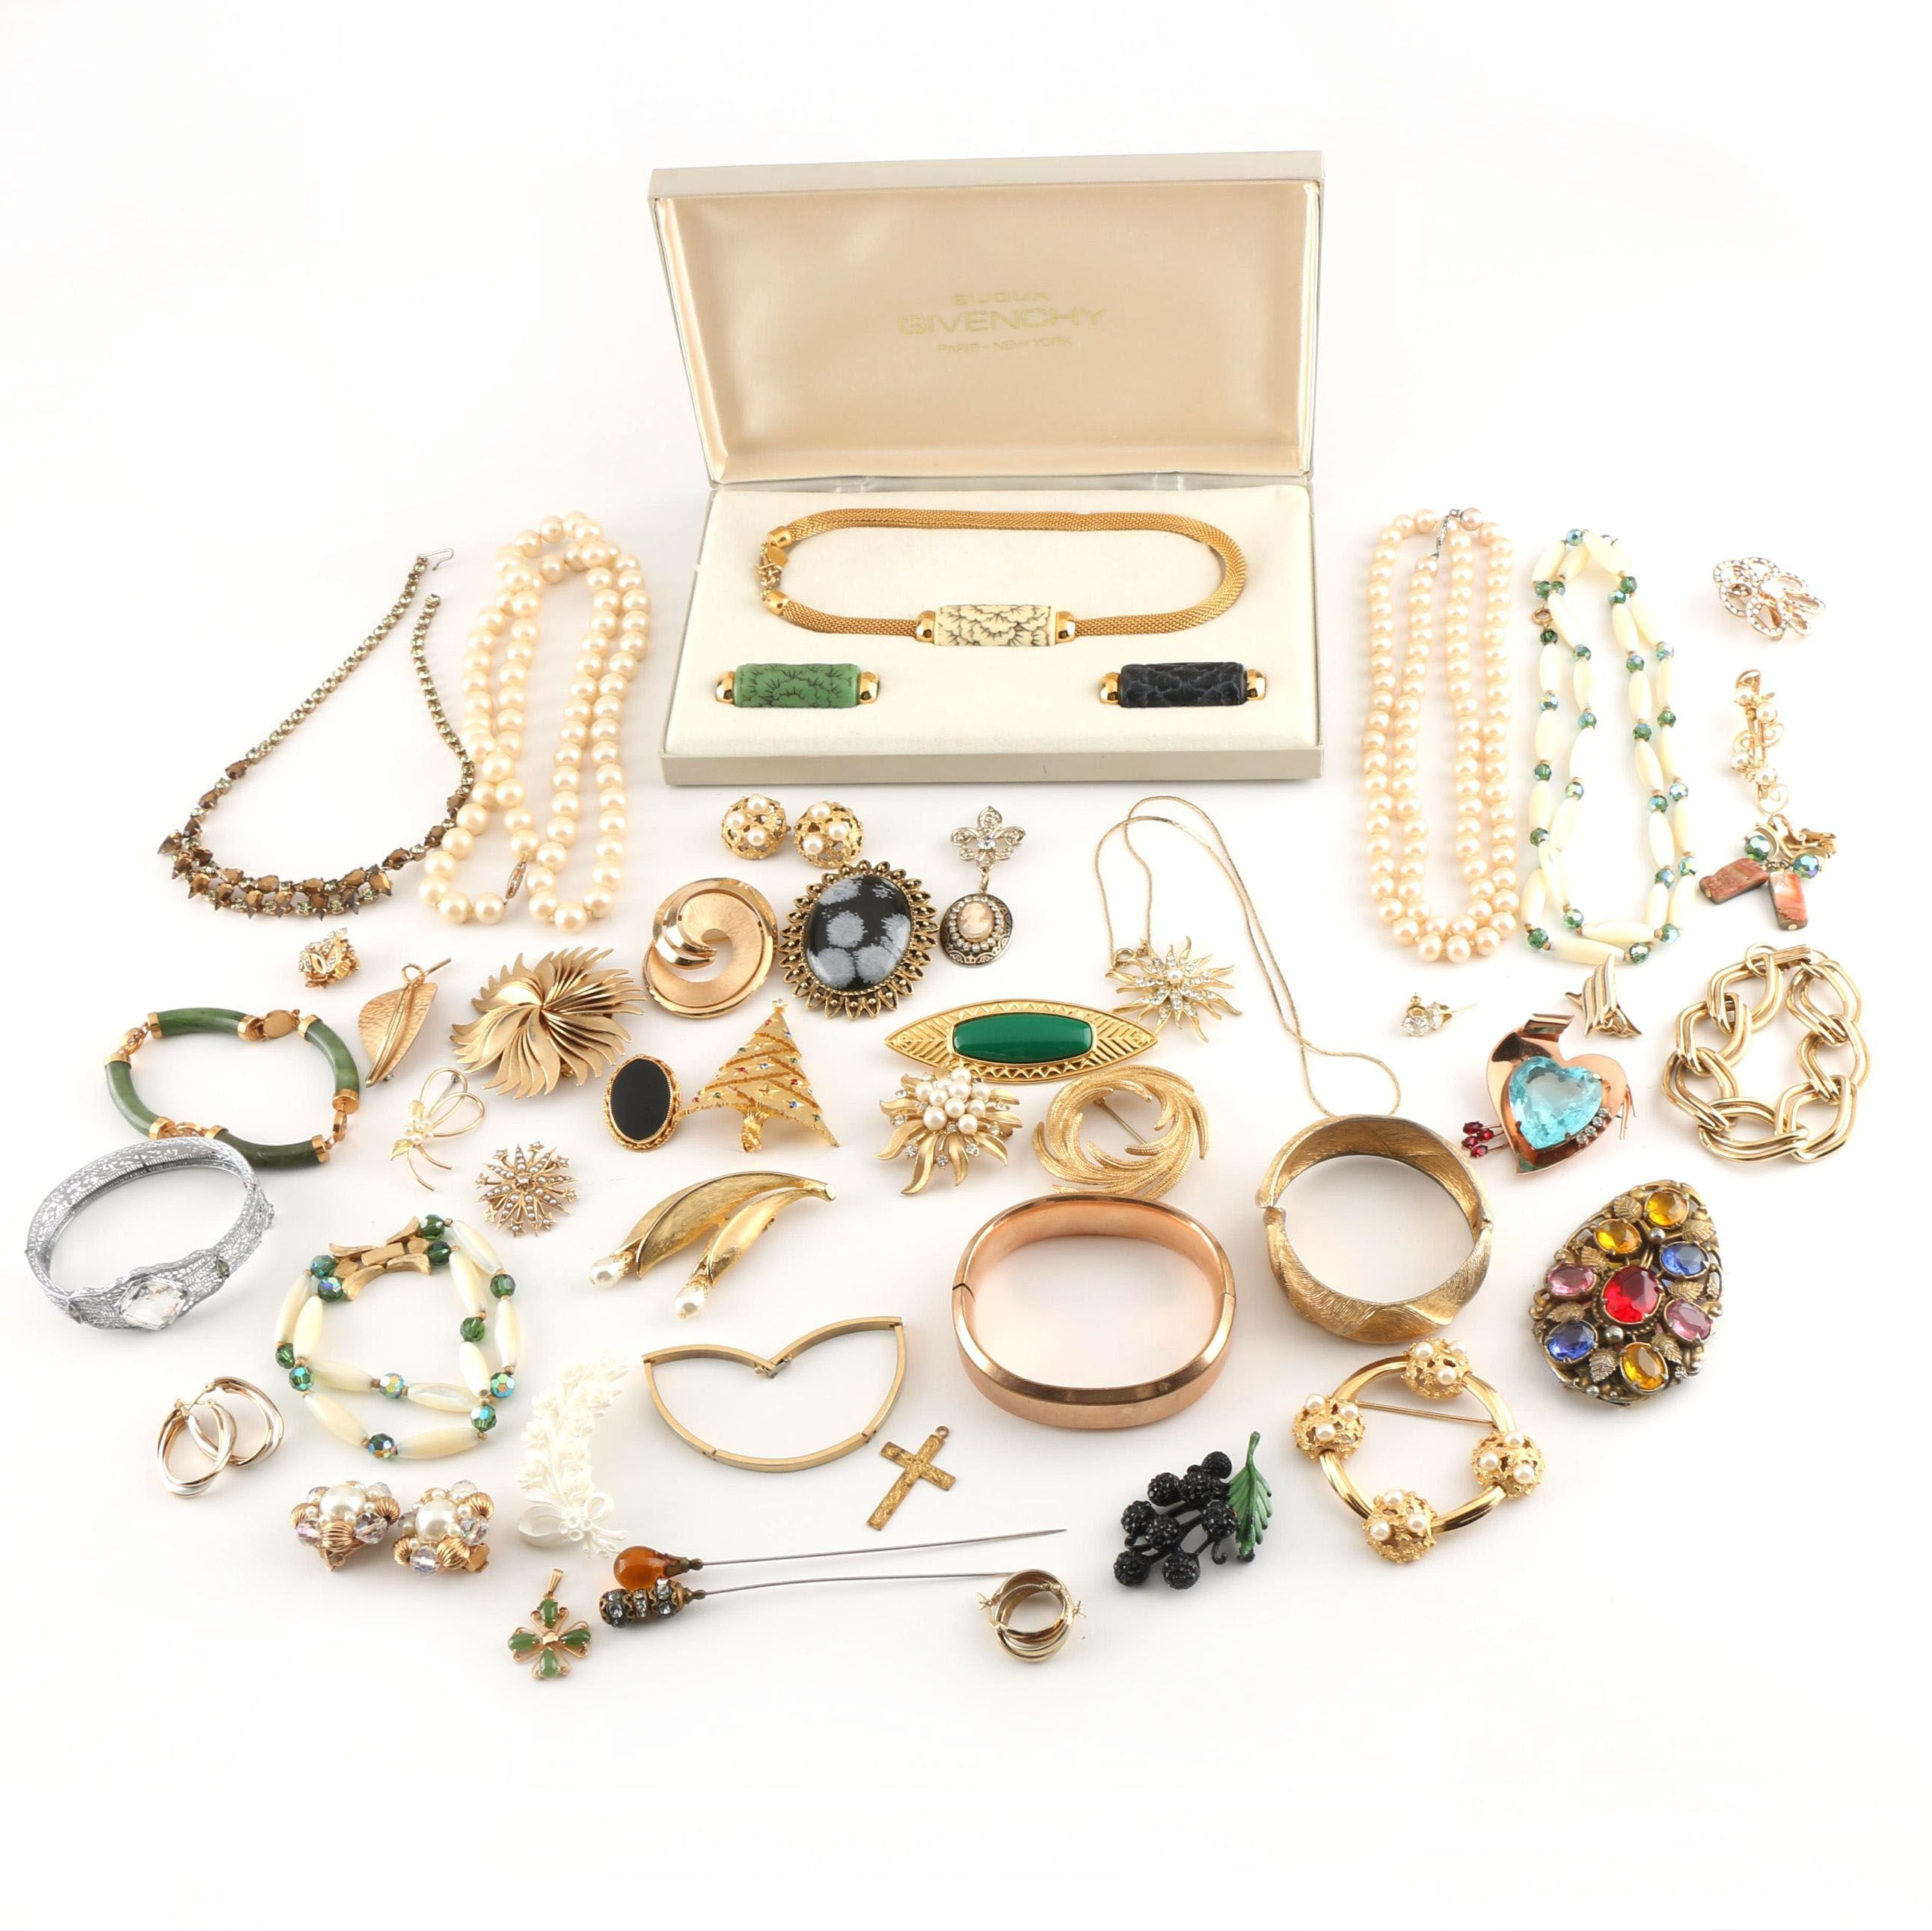 Assortment of Vintage Costume Jewelry Including Givenchy and Coro